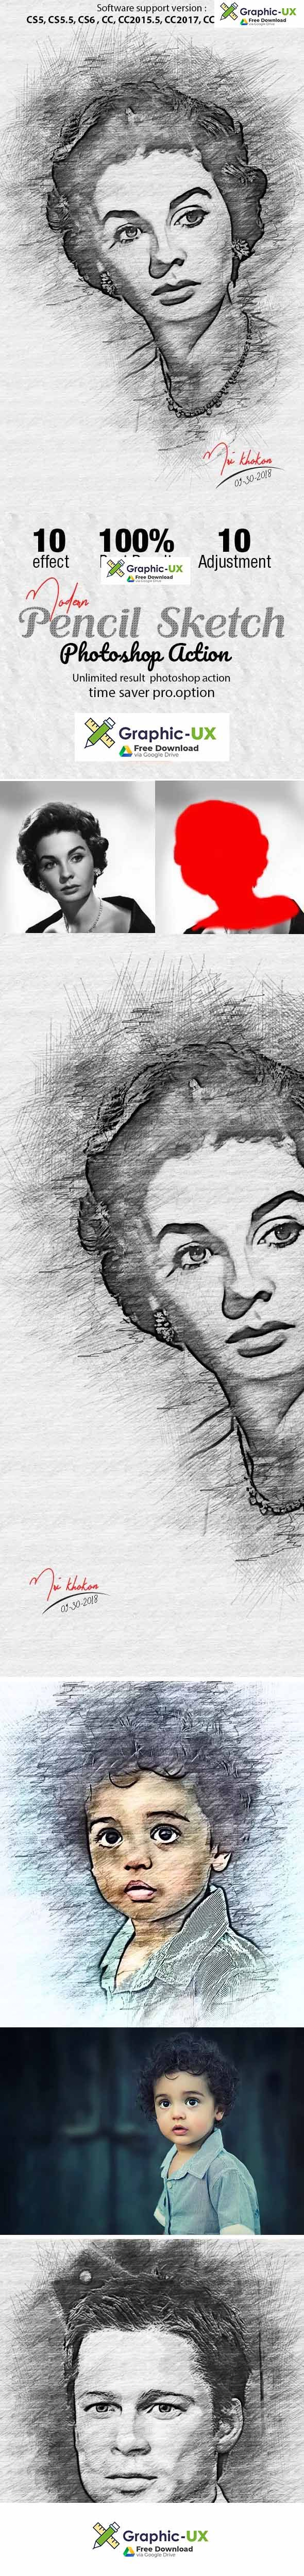 Modern Pencil Sketch Photoshop Action Graphicux Sketch Photoshop Photoshop Actions Free Photoshop Actions